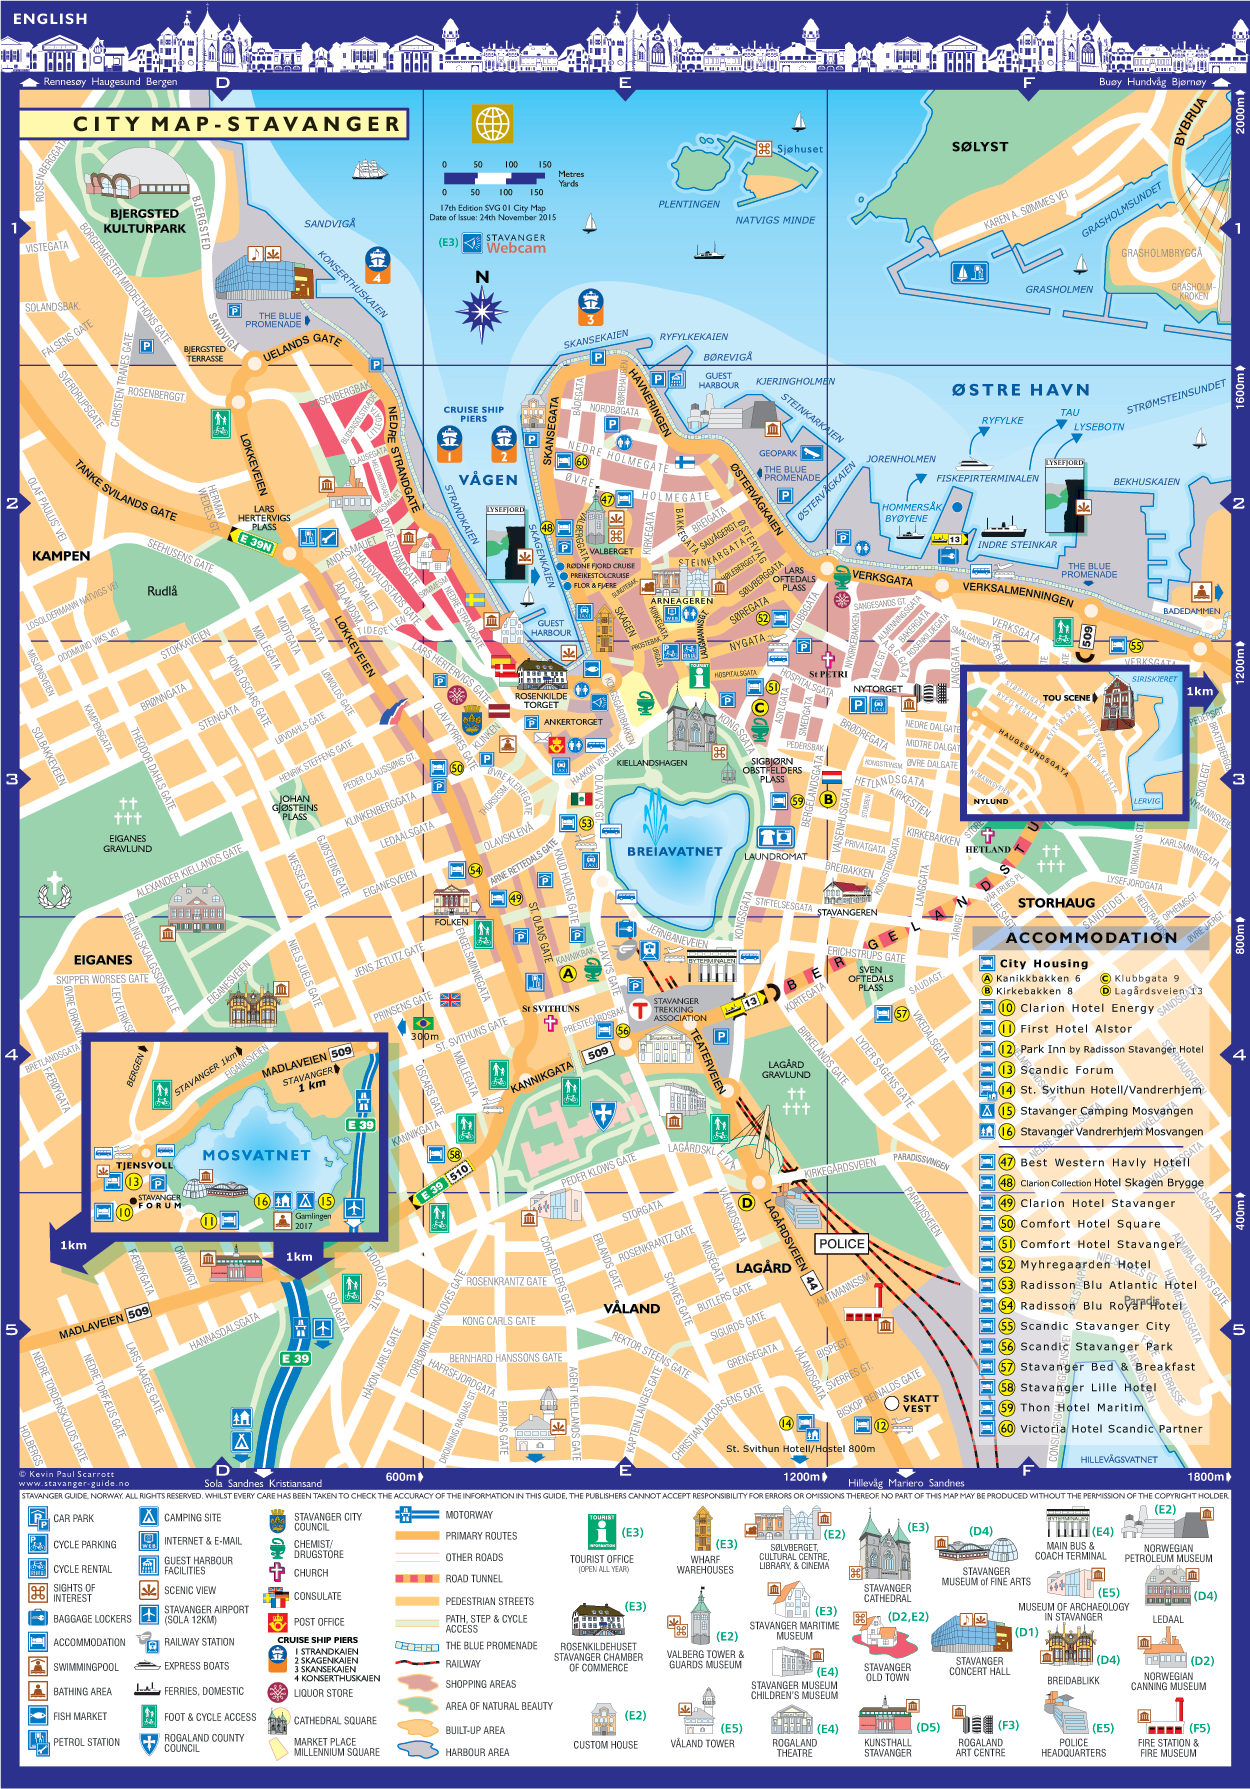 Stavanger Guide Maps Stavanger City Map Norway English - Norway map stavanger